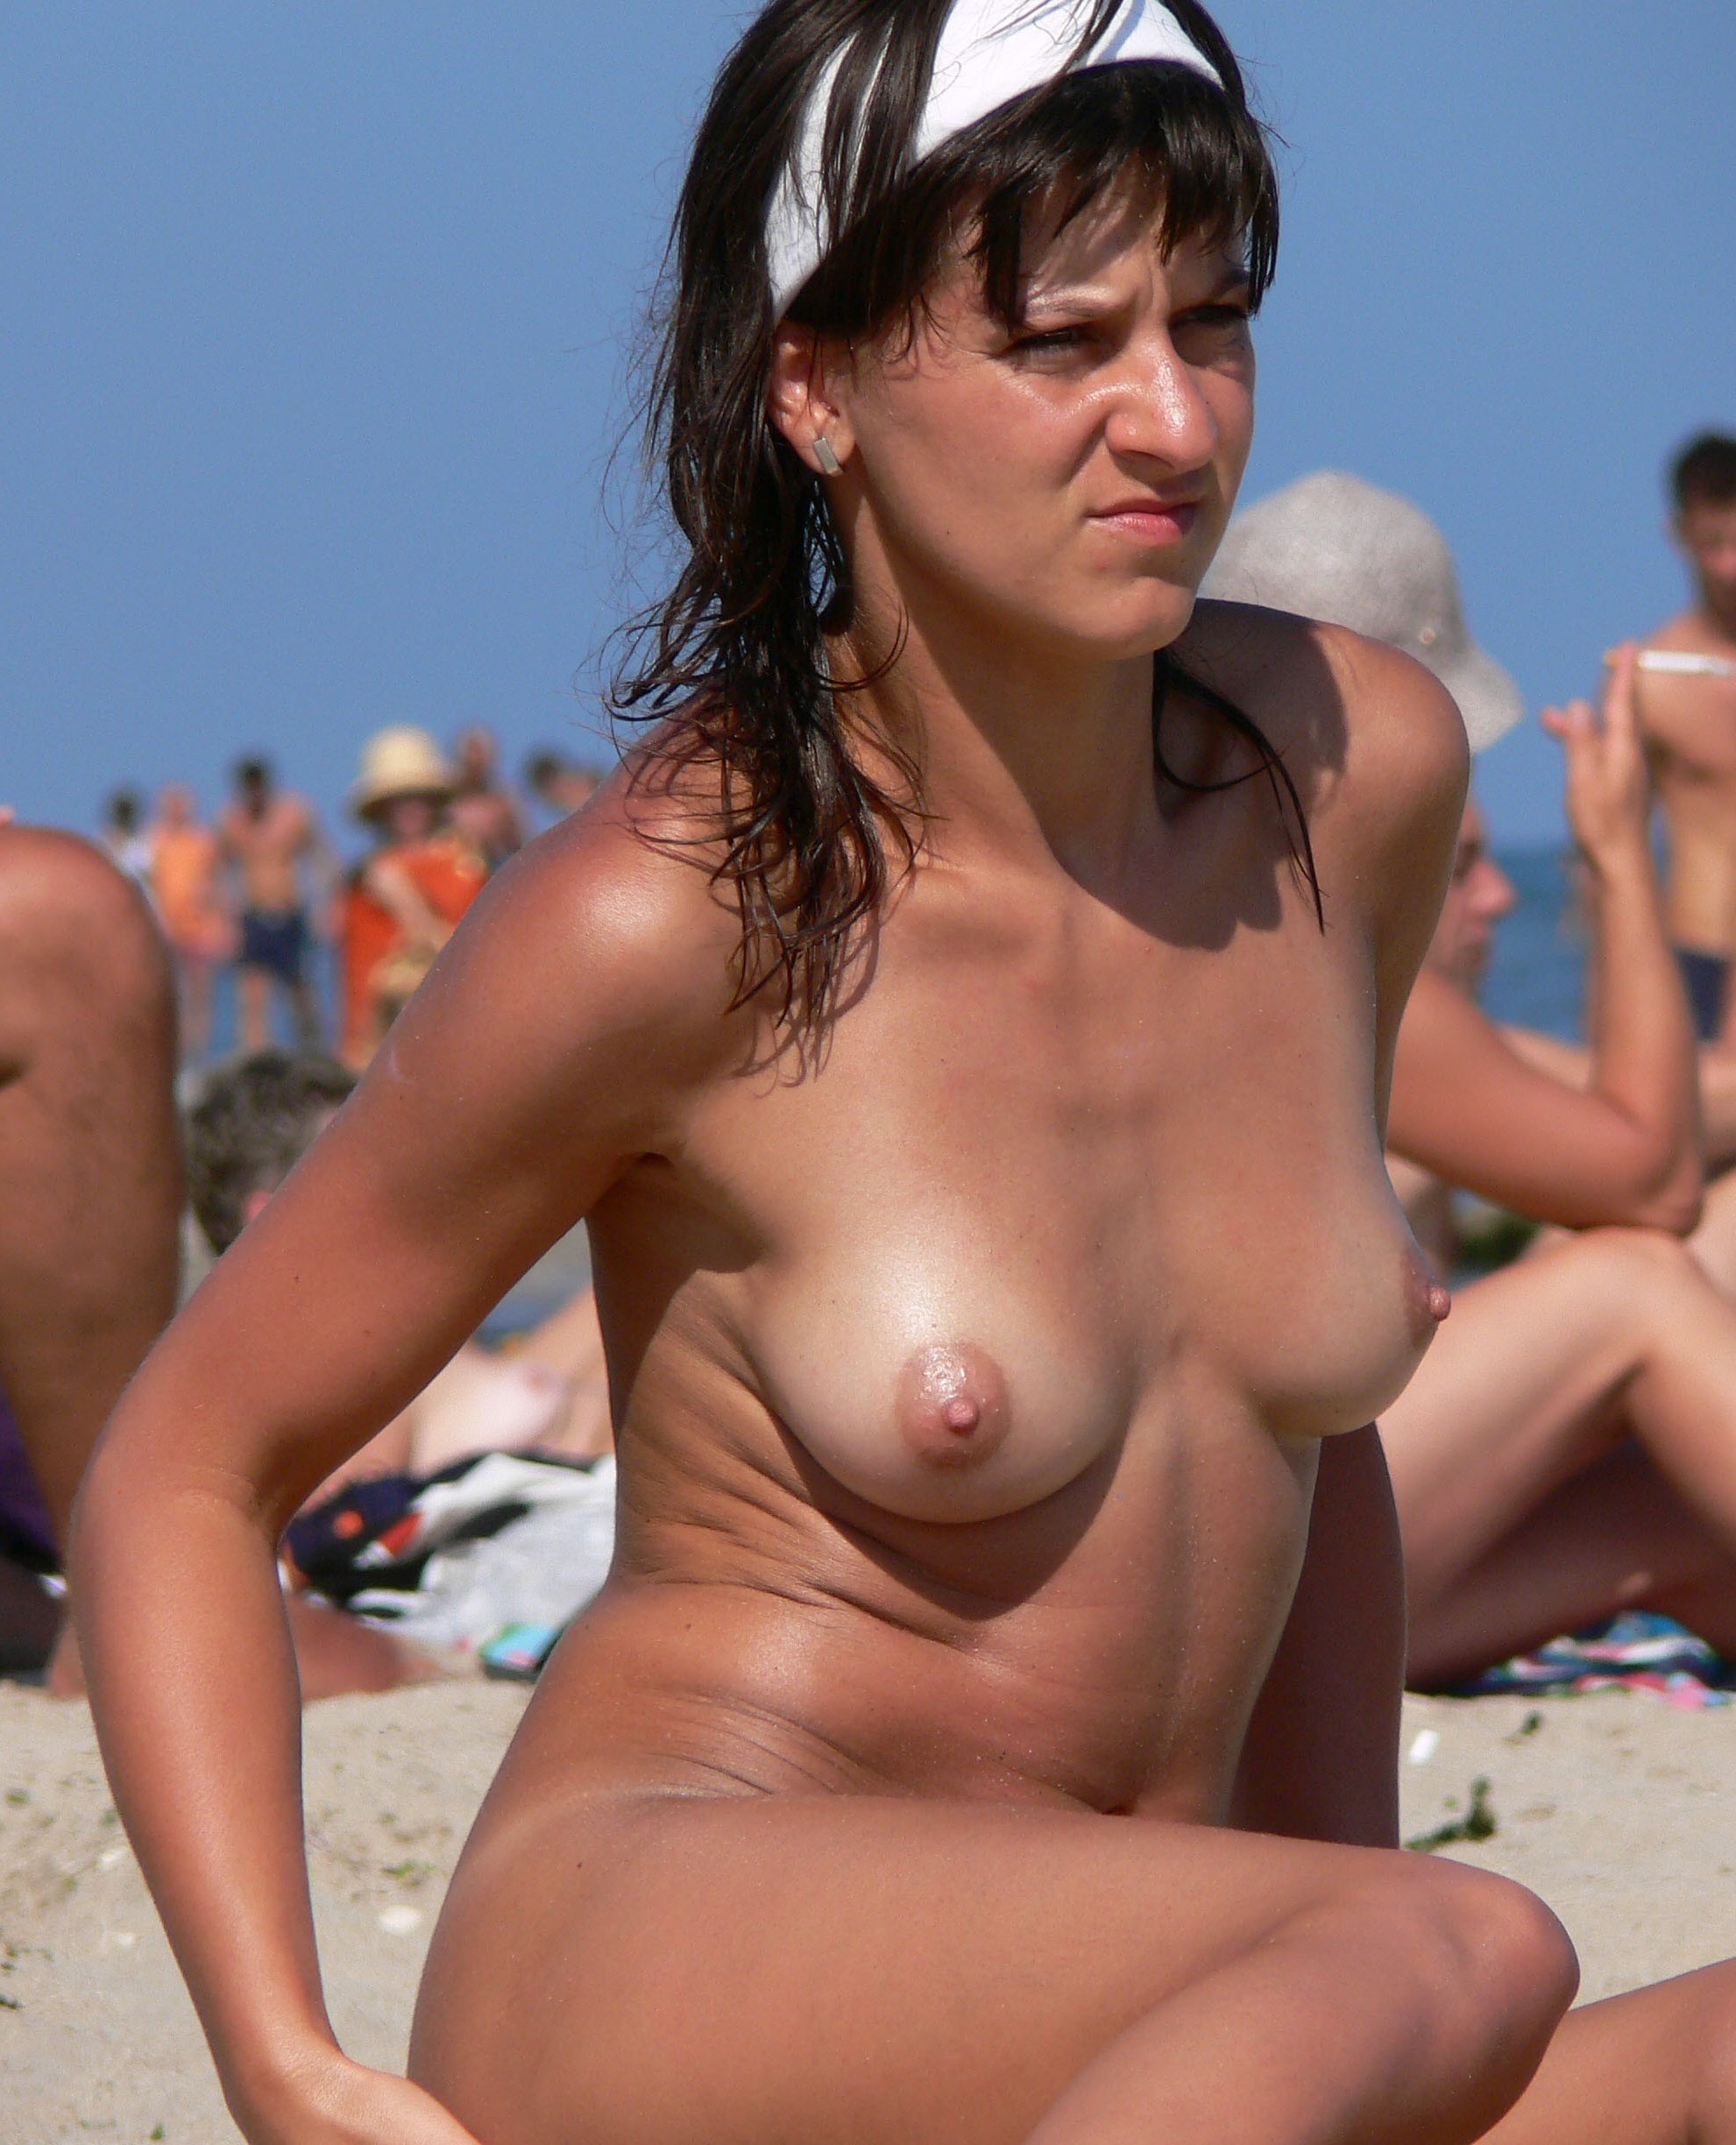 Nude models on beach